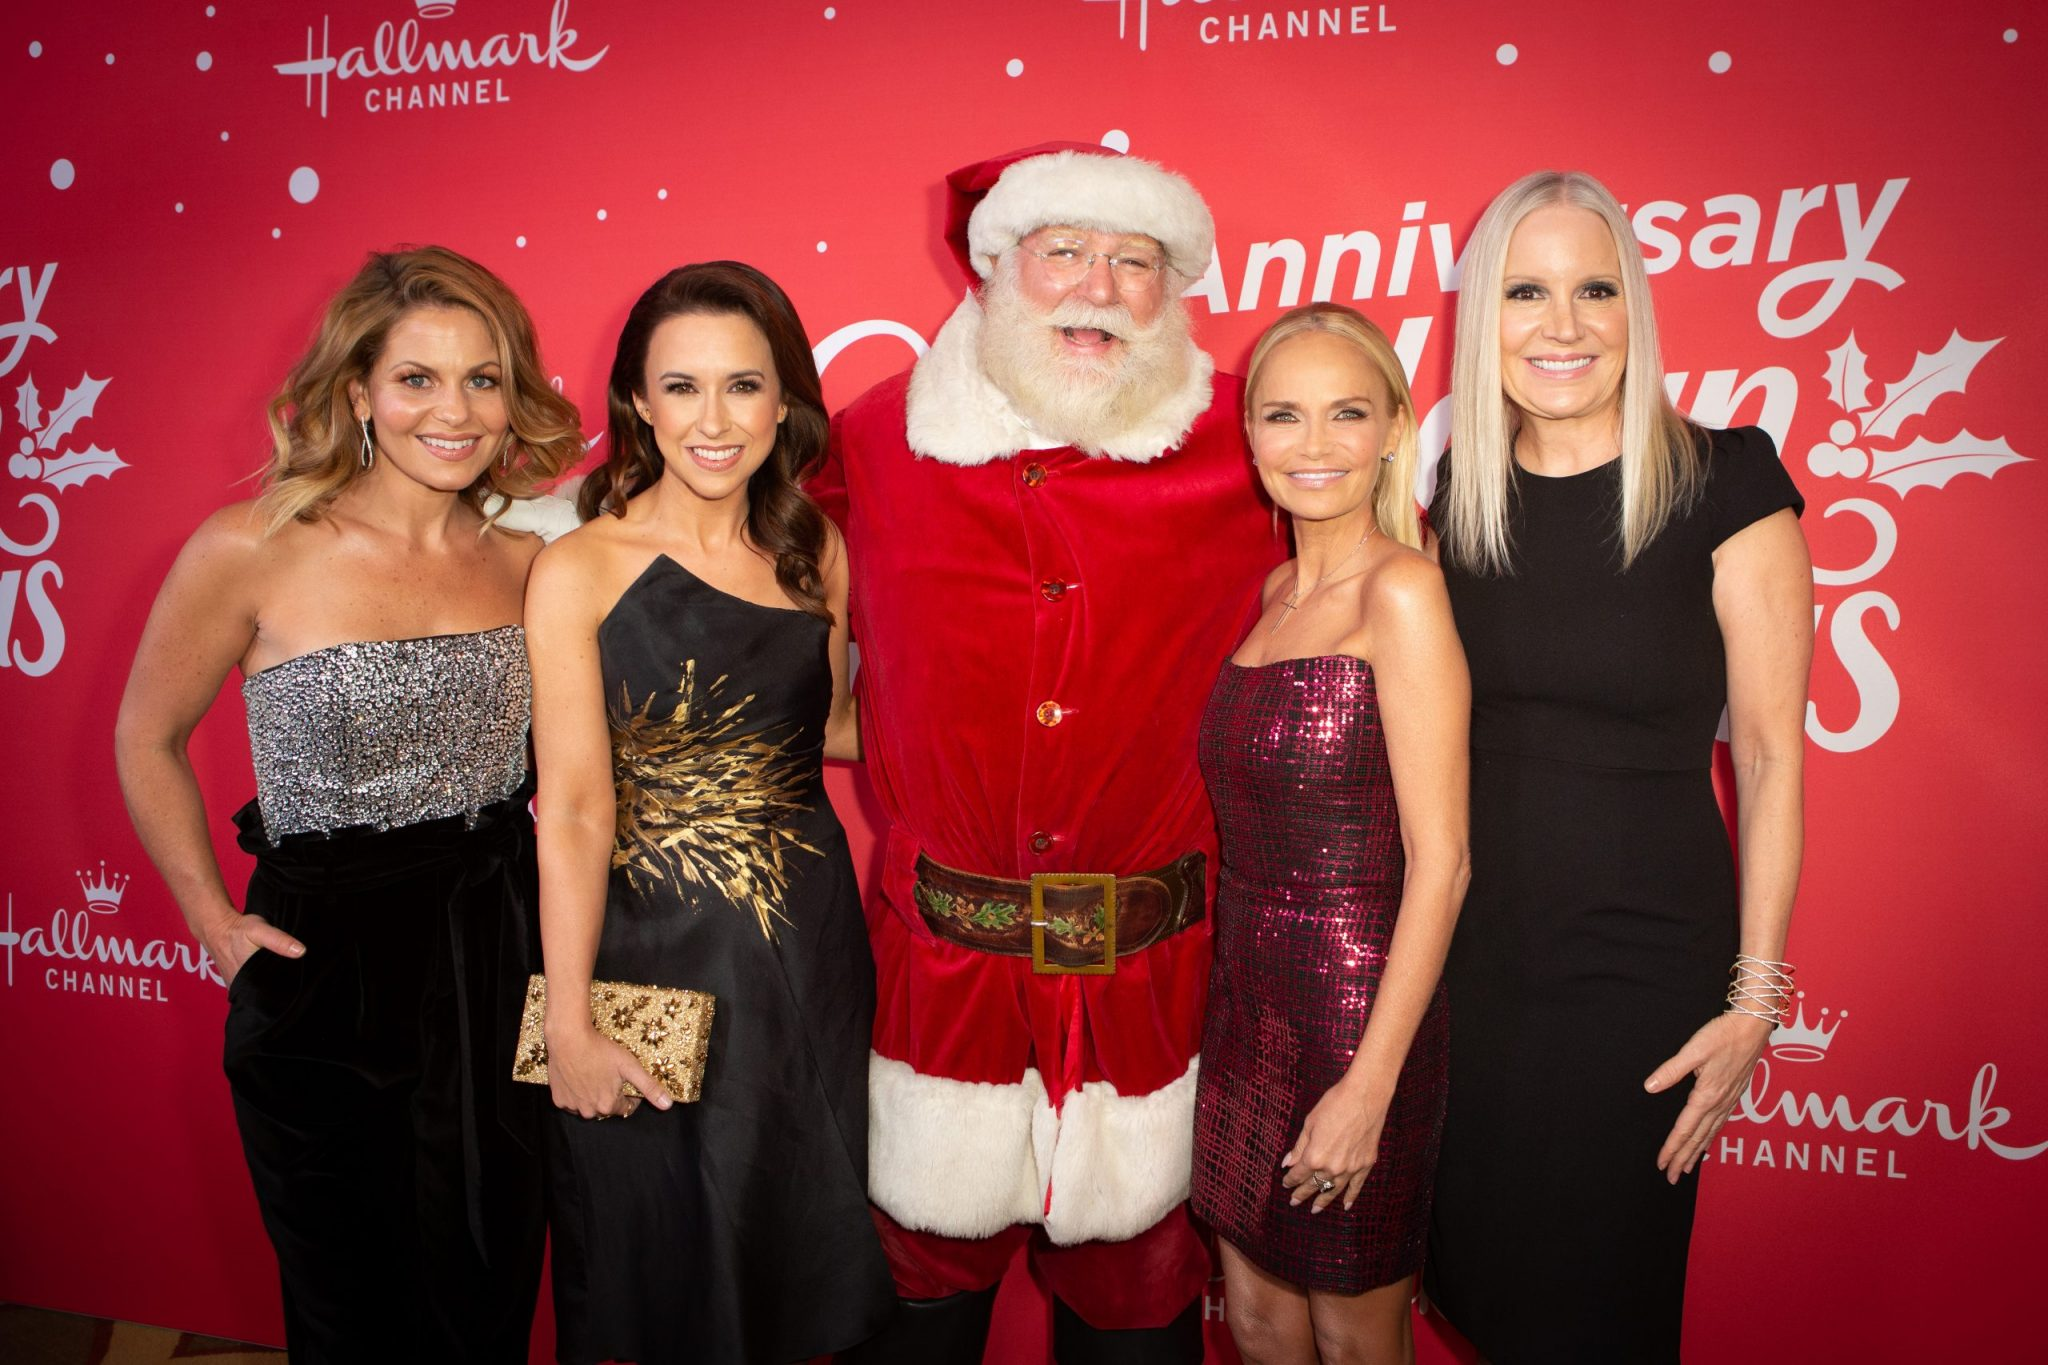 """Hallmark Channel's 10th Anniversary of Countdown to Christmas kickoff event in Beverly Hills, CA with Tony and Emmy Award winner, Kristin Chenoweth along with Hallmark Channel super stars of Christmas Candace Cameron Bure and Lacey Chabert premiere screening of """"A Christmas Love Story."""" Photo: Candace Cameron Bure, Lacey Chabert, Kristin Chenoweth, Michelle Vicary Credit: ©2019 Crown Media United States LLC/Photographer:Alexx Henry/Alexx Henry Studios, LLC"""